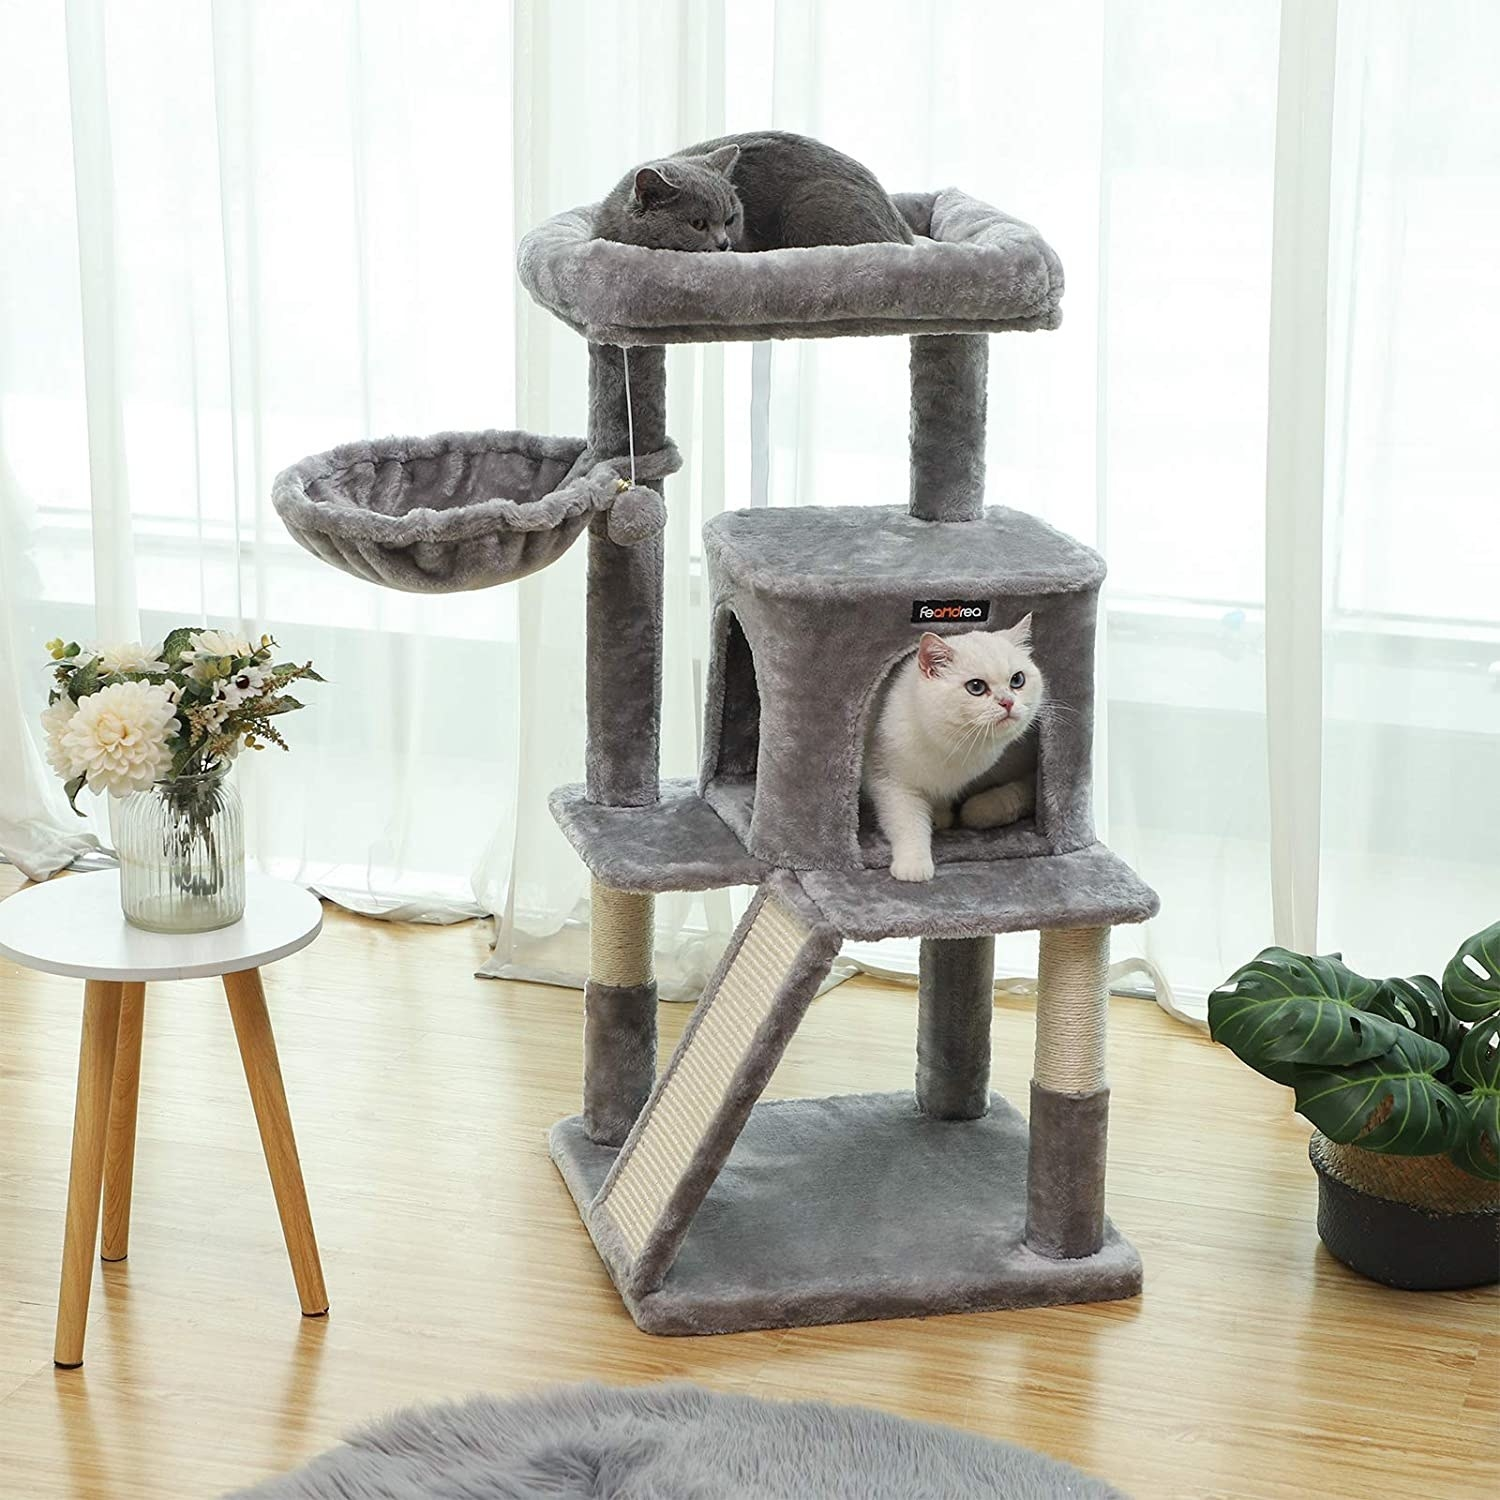 A pair of cats playing in a large cat condo